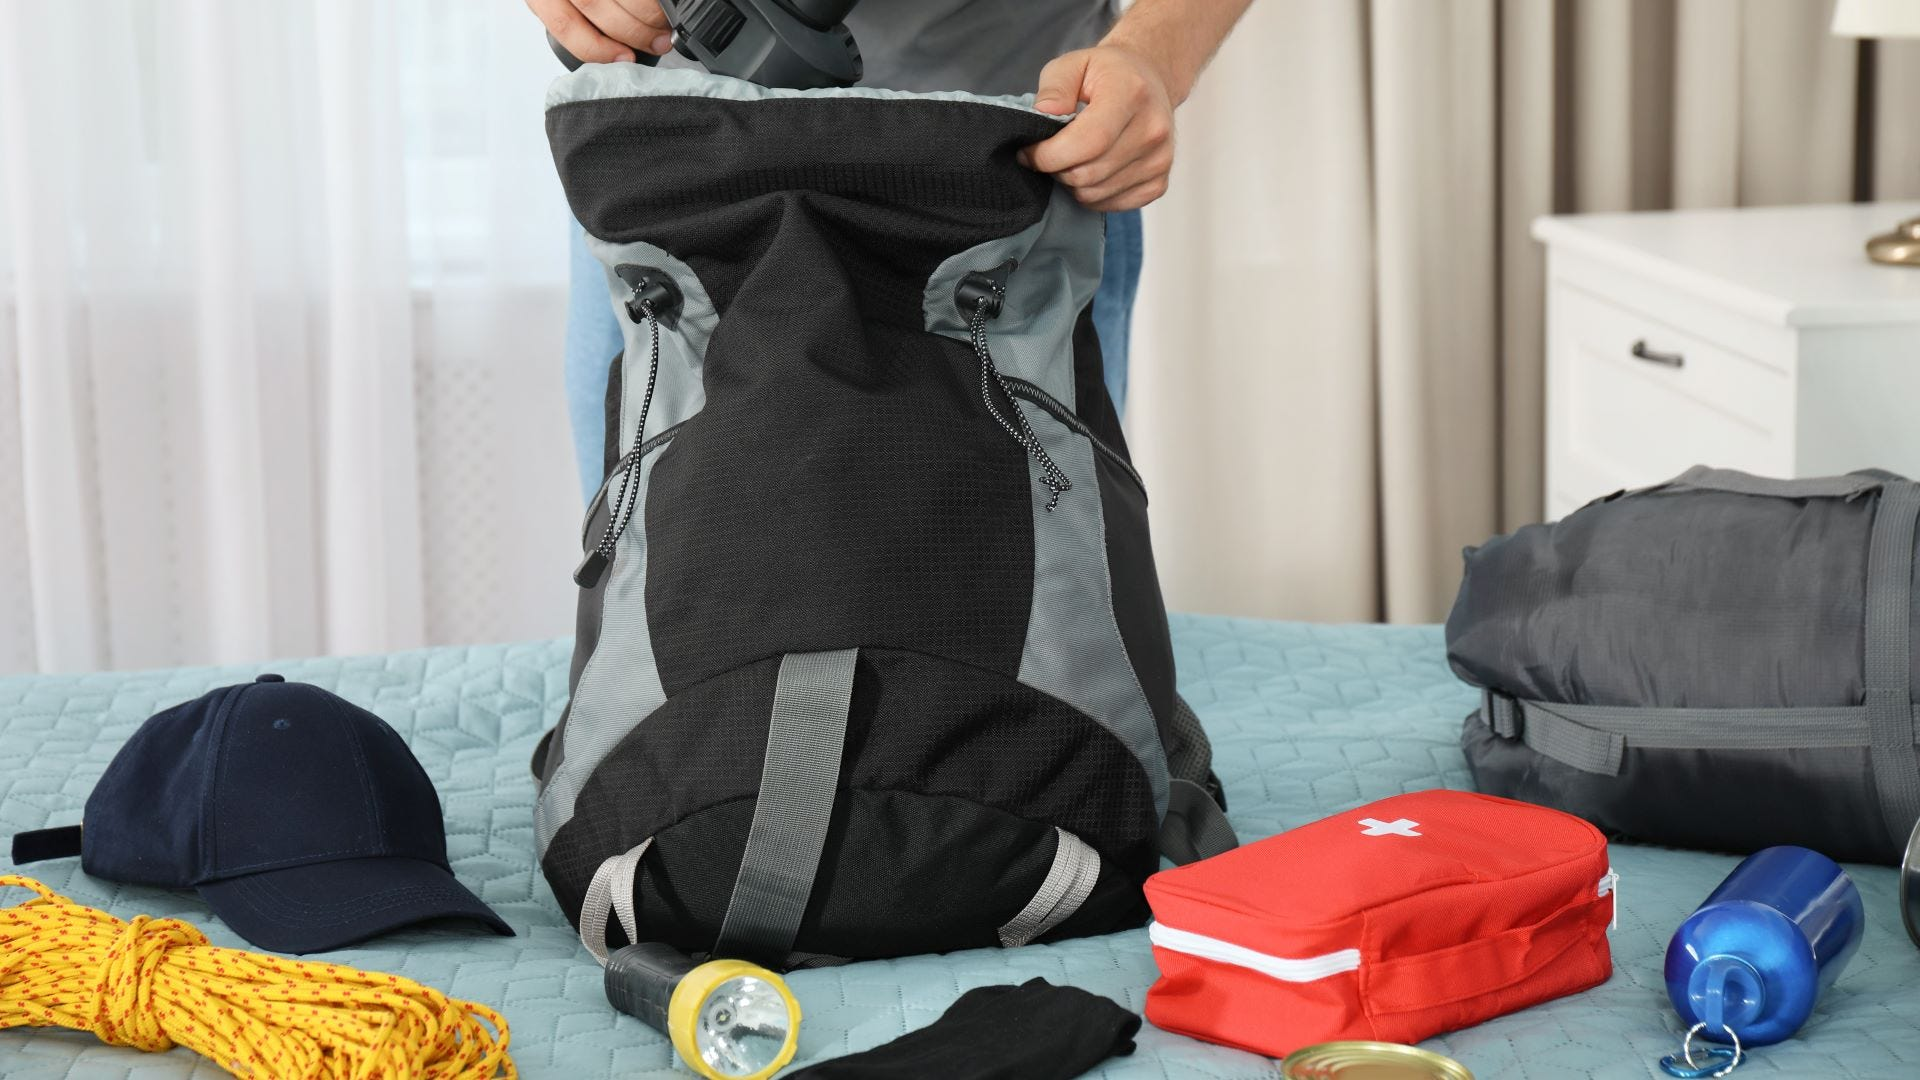 A man packing a hiking backpack on a bed with supplies surrounding it.